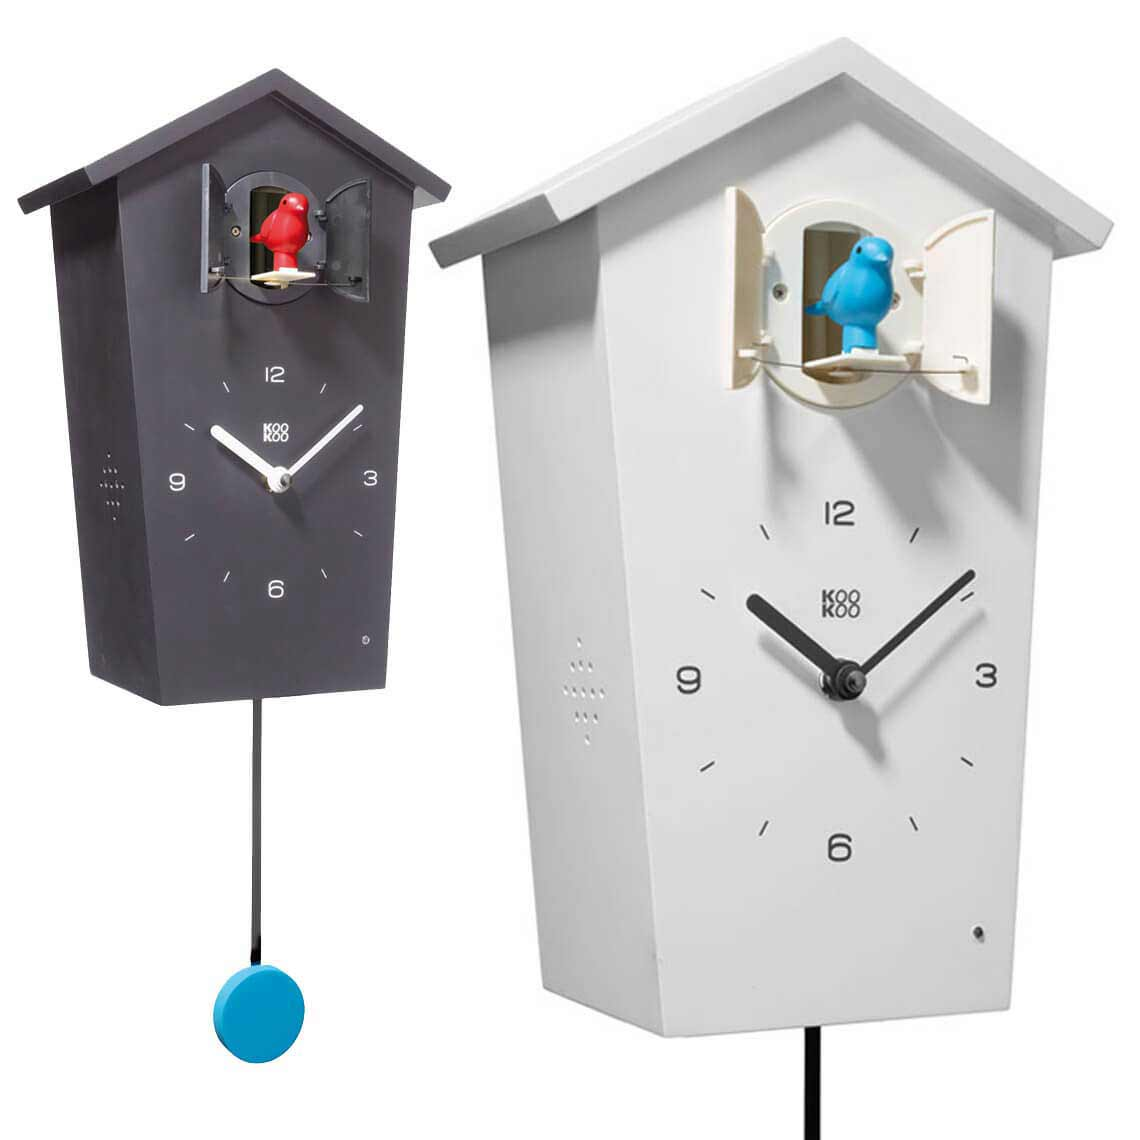 Cuckoo clock BirdHouse in black or white by KooKoo